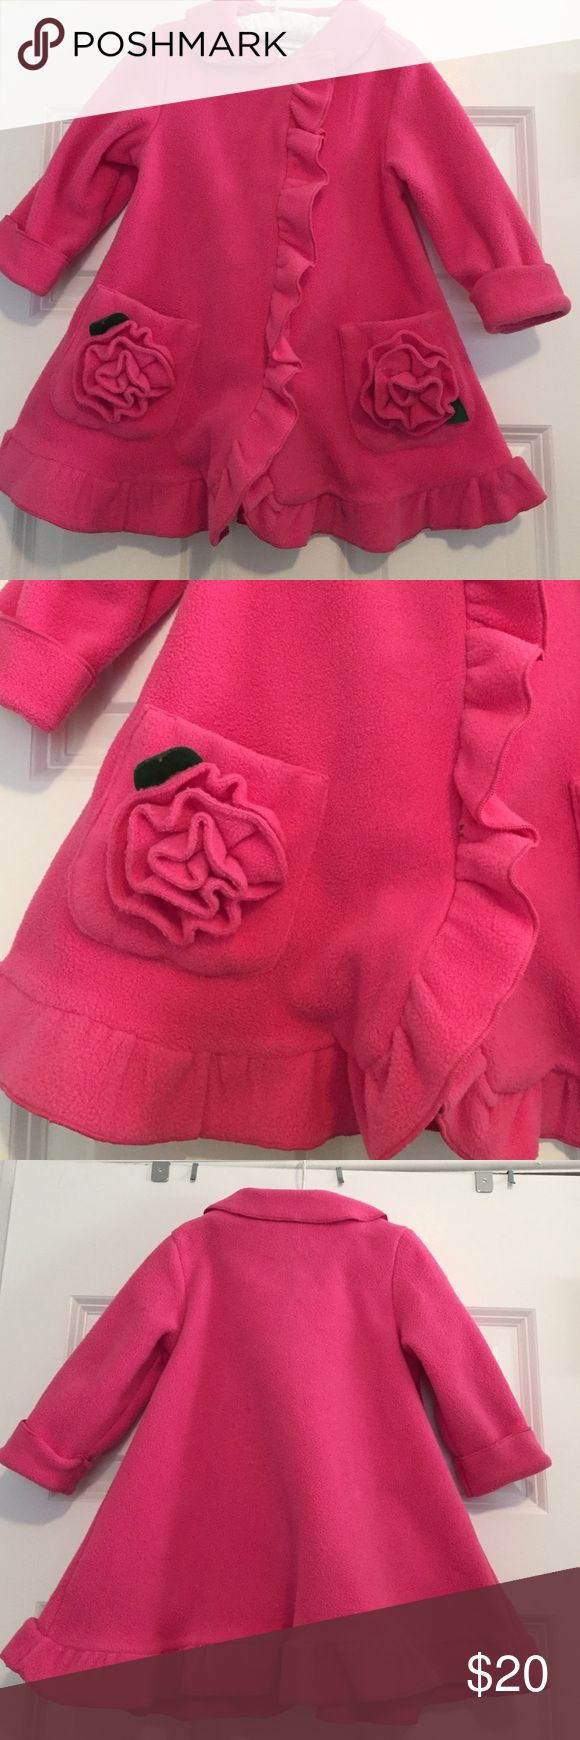 Pink Fleece Dressy Jacket Like new adorable Bonnie Baby pink fleece dressy jacket with hidden snap closure under ruffle detail, 2 patch pockets with large fleece flowers, collar and ruffle hem. Size 18mos. Bonnie Baby Jackets & Coats